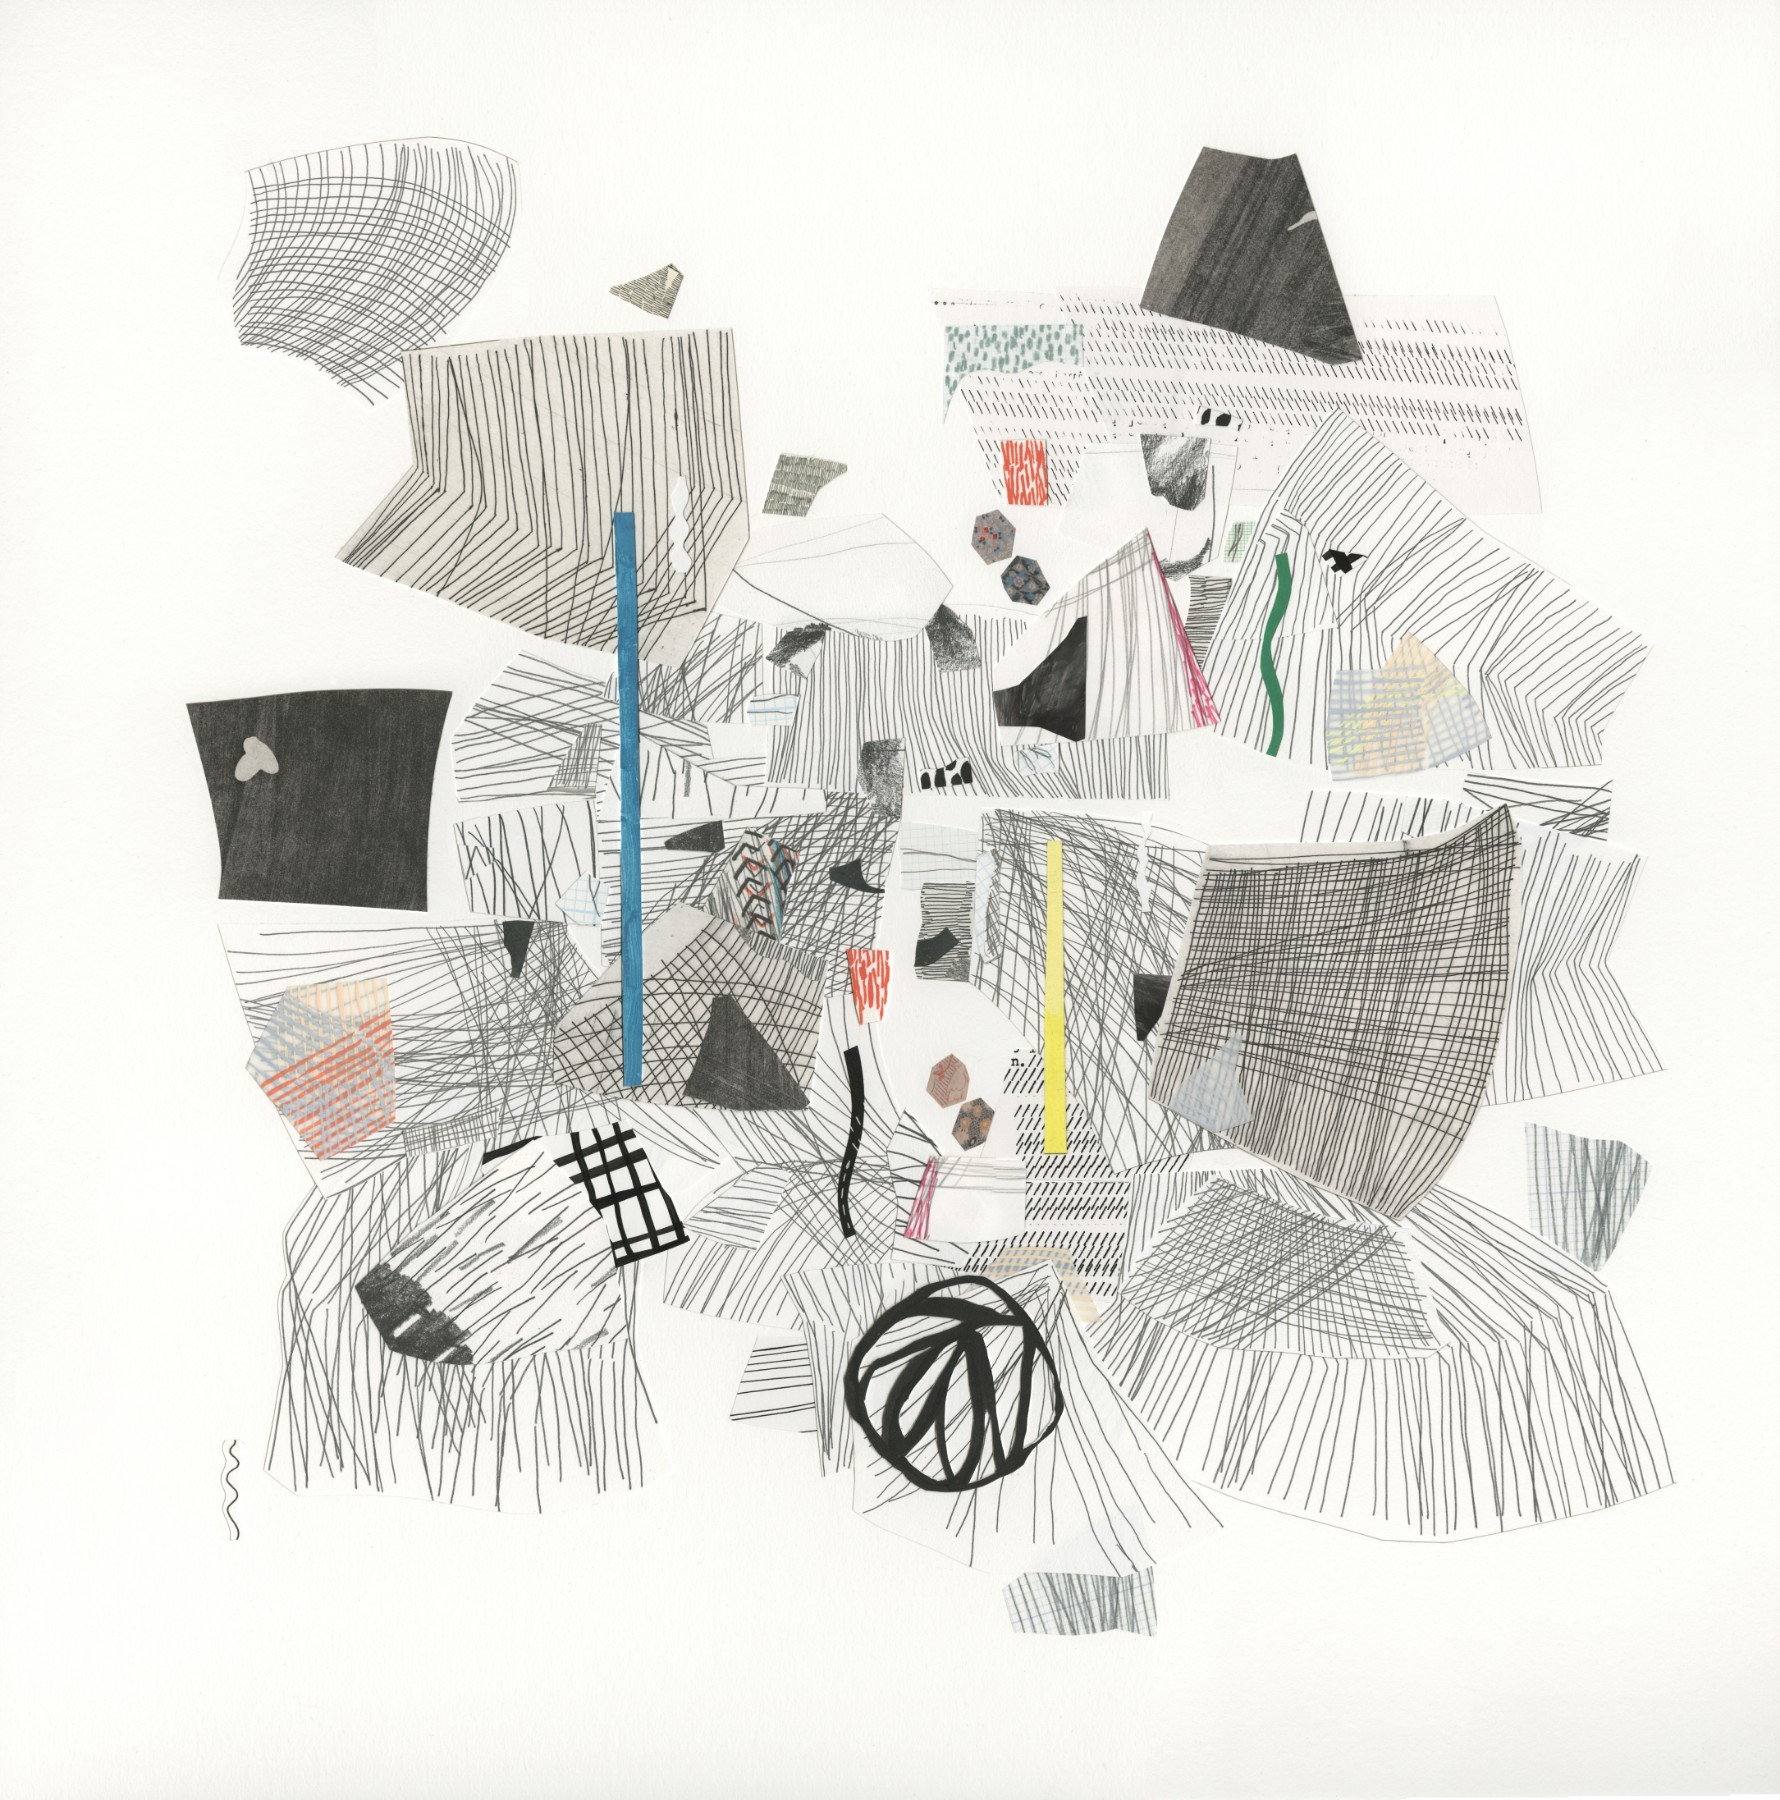 Diana Behl,  and branching,  printed, painted and drawn collage, 22x22 inches